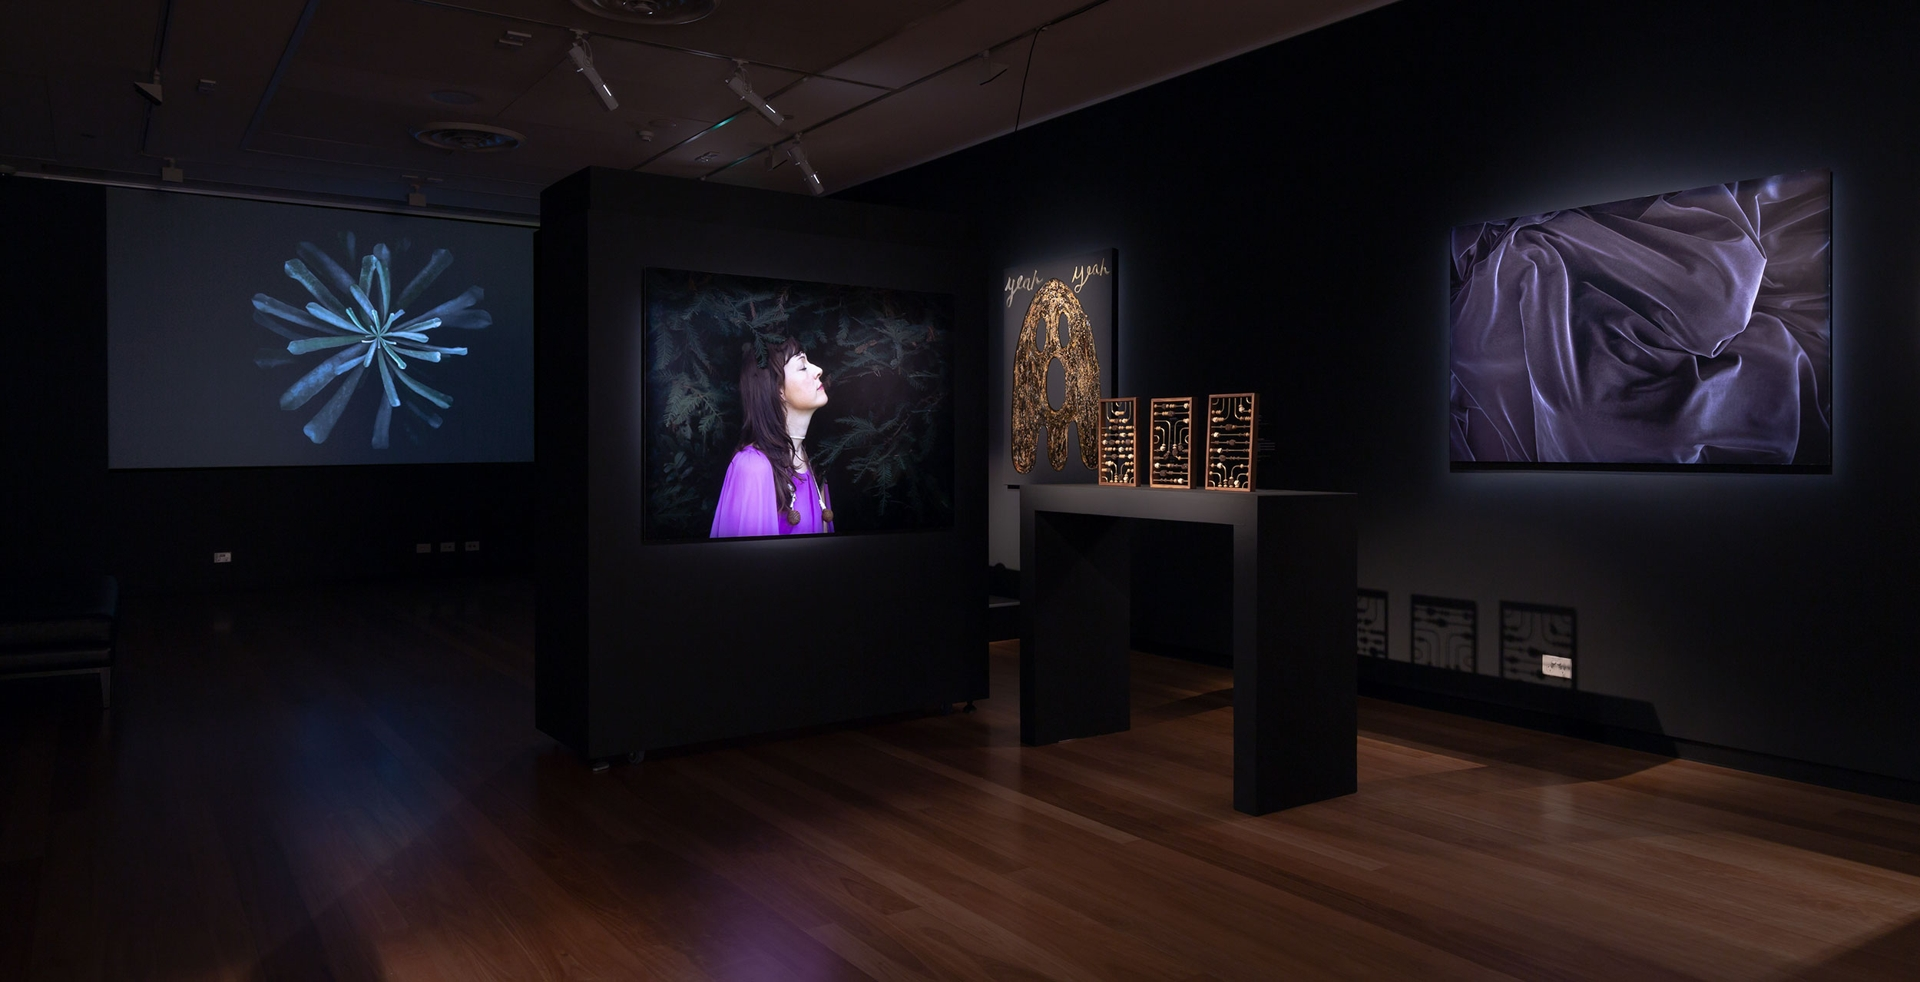 Hawthorn's Town Hall Gallery opens After Dark image